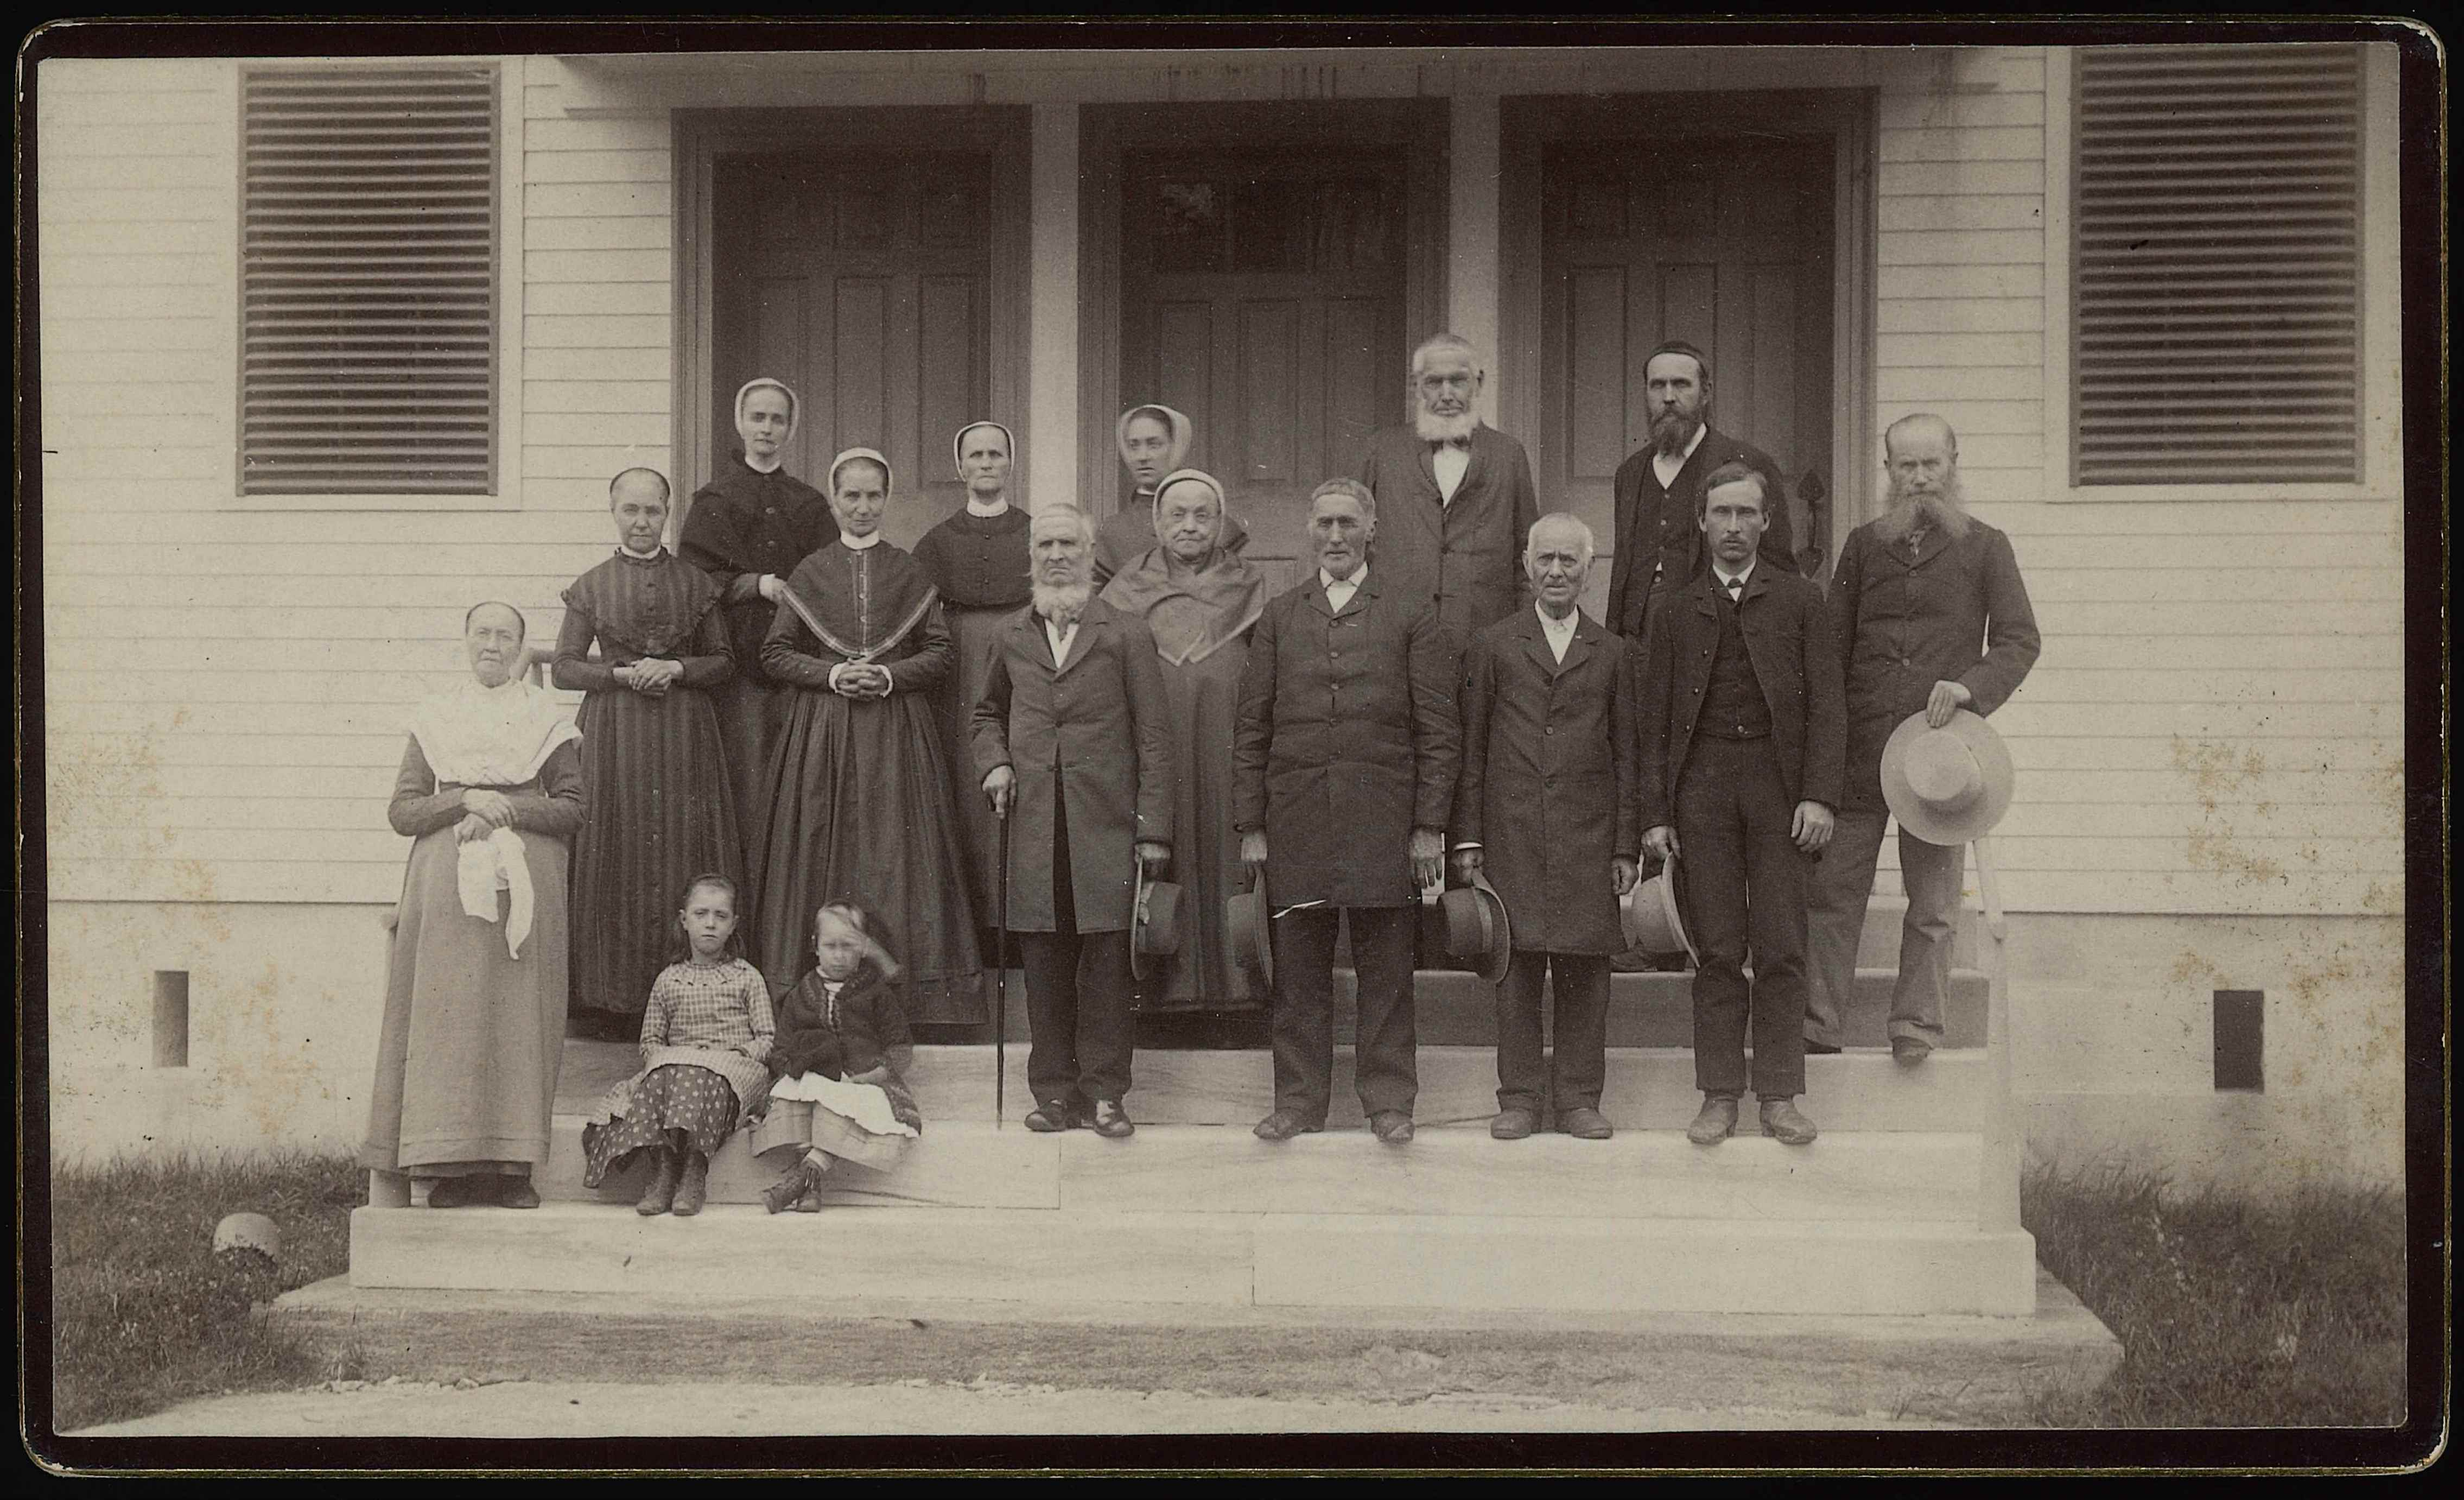 Group of Shakers on Meetinghouse Steps, Church Family, Mount Lebanon, NY, 1888